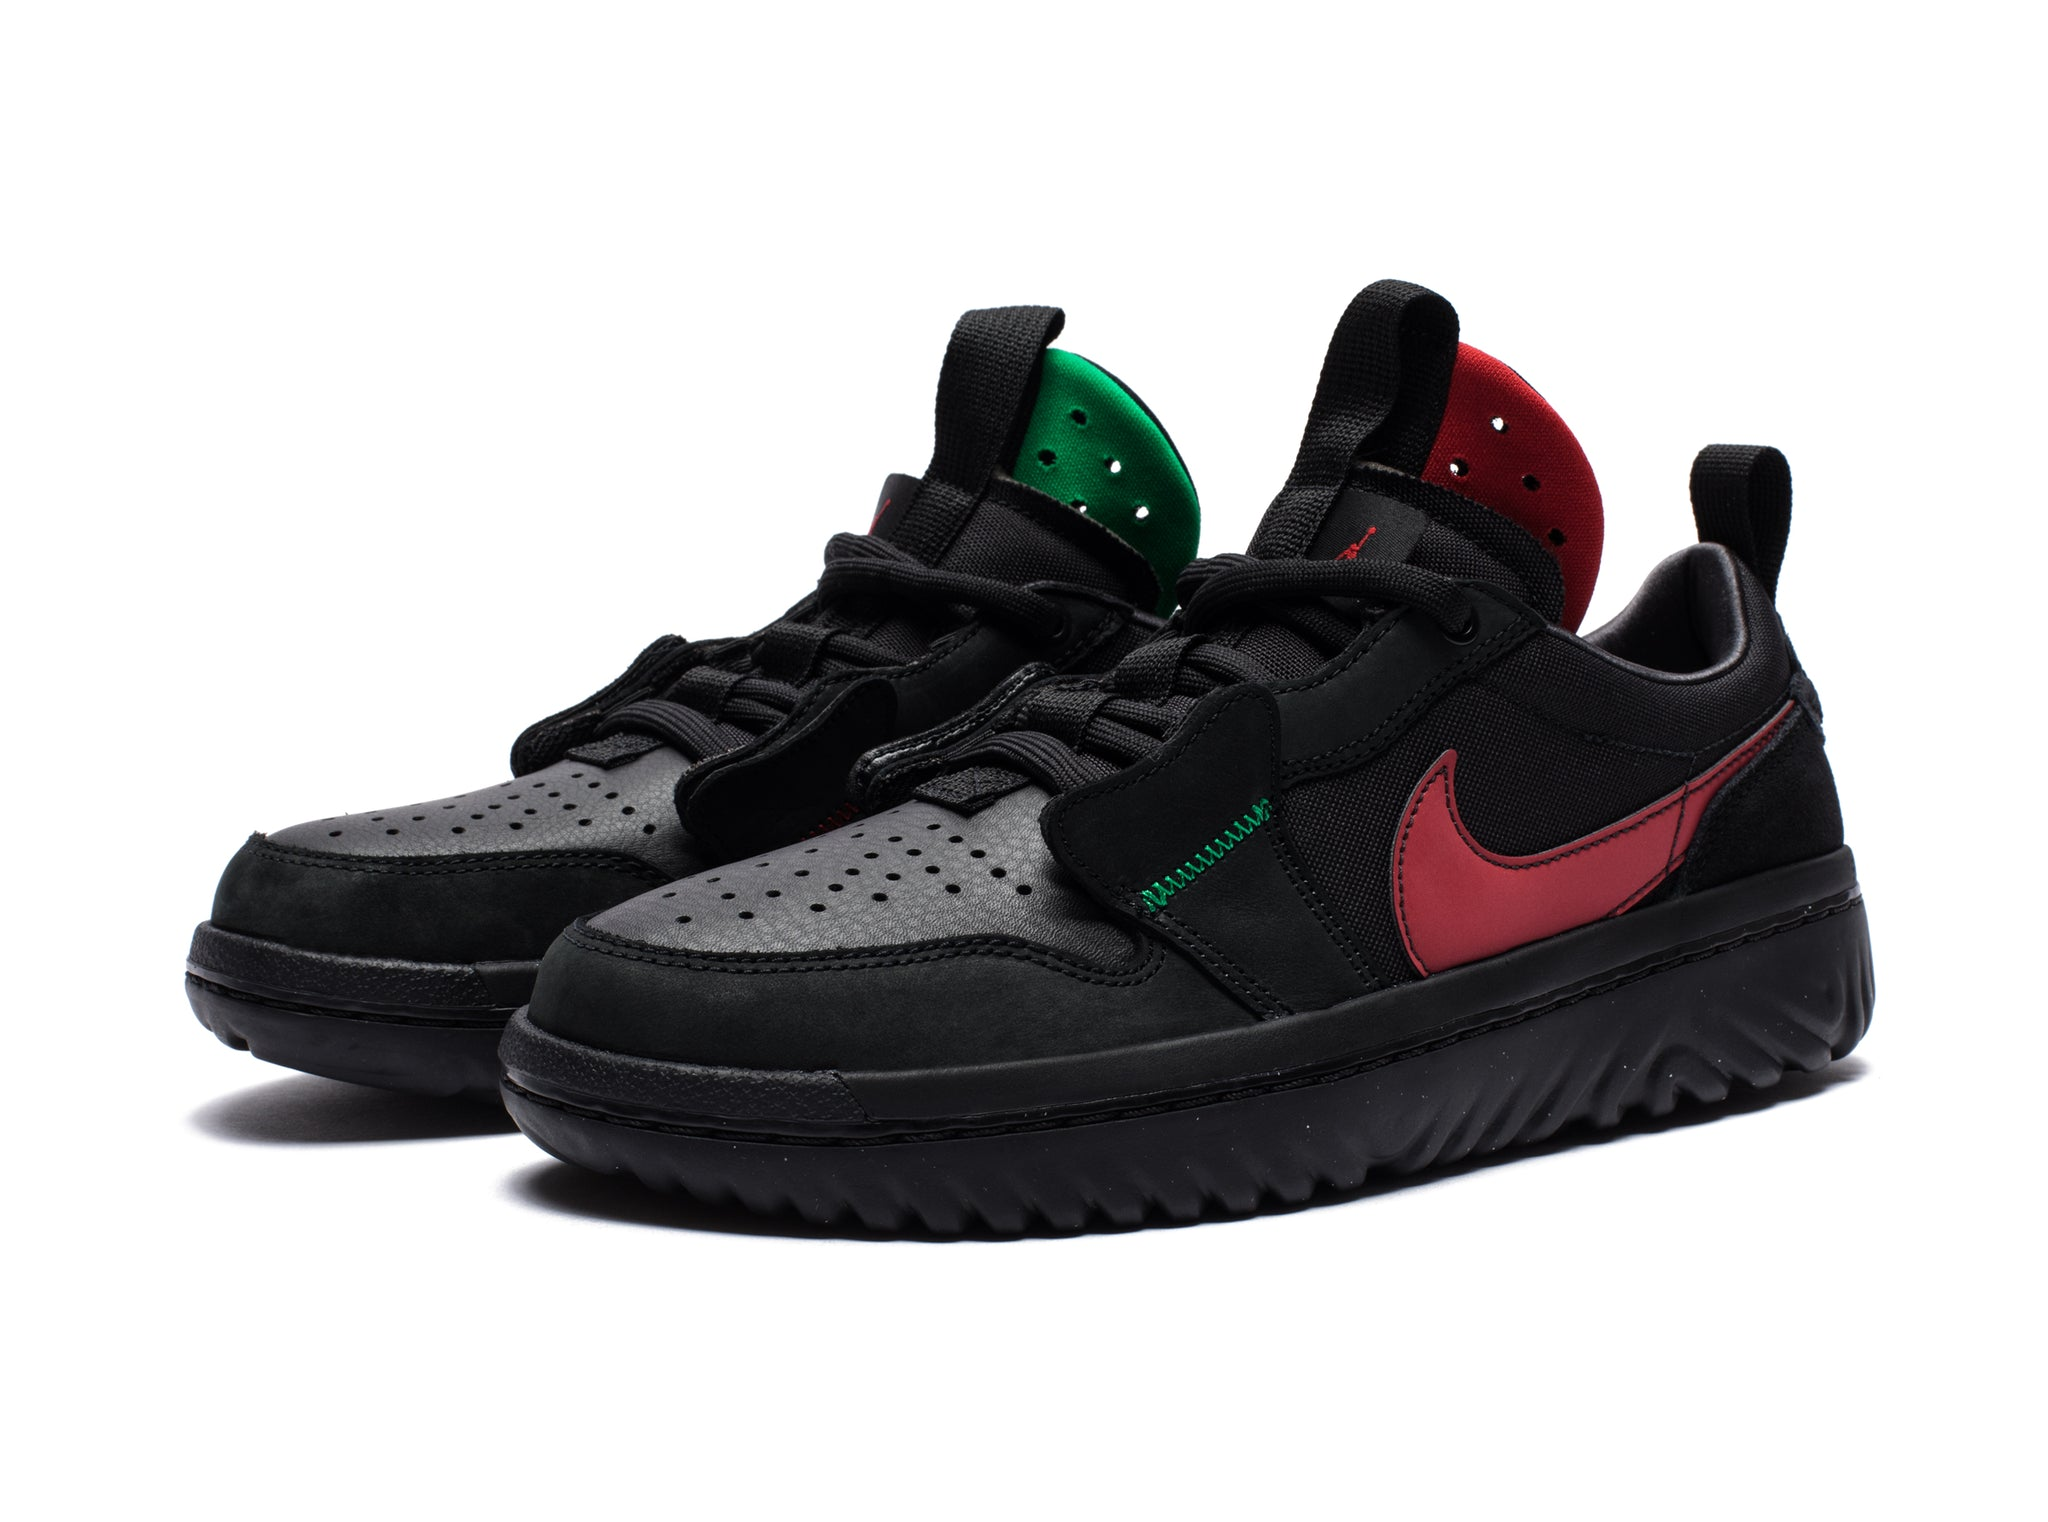 AJ 1 LOW REACT FEARLESS - BLACK/VARSITYRED